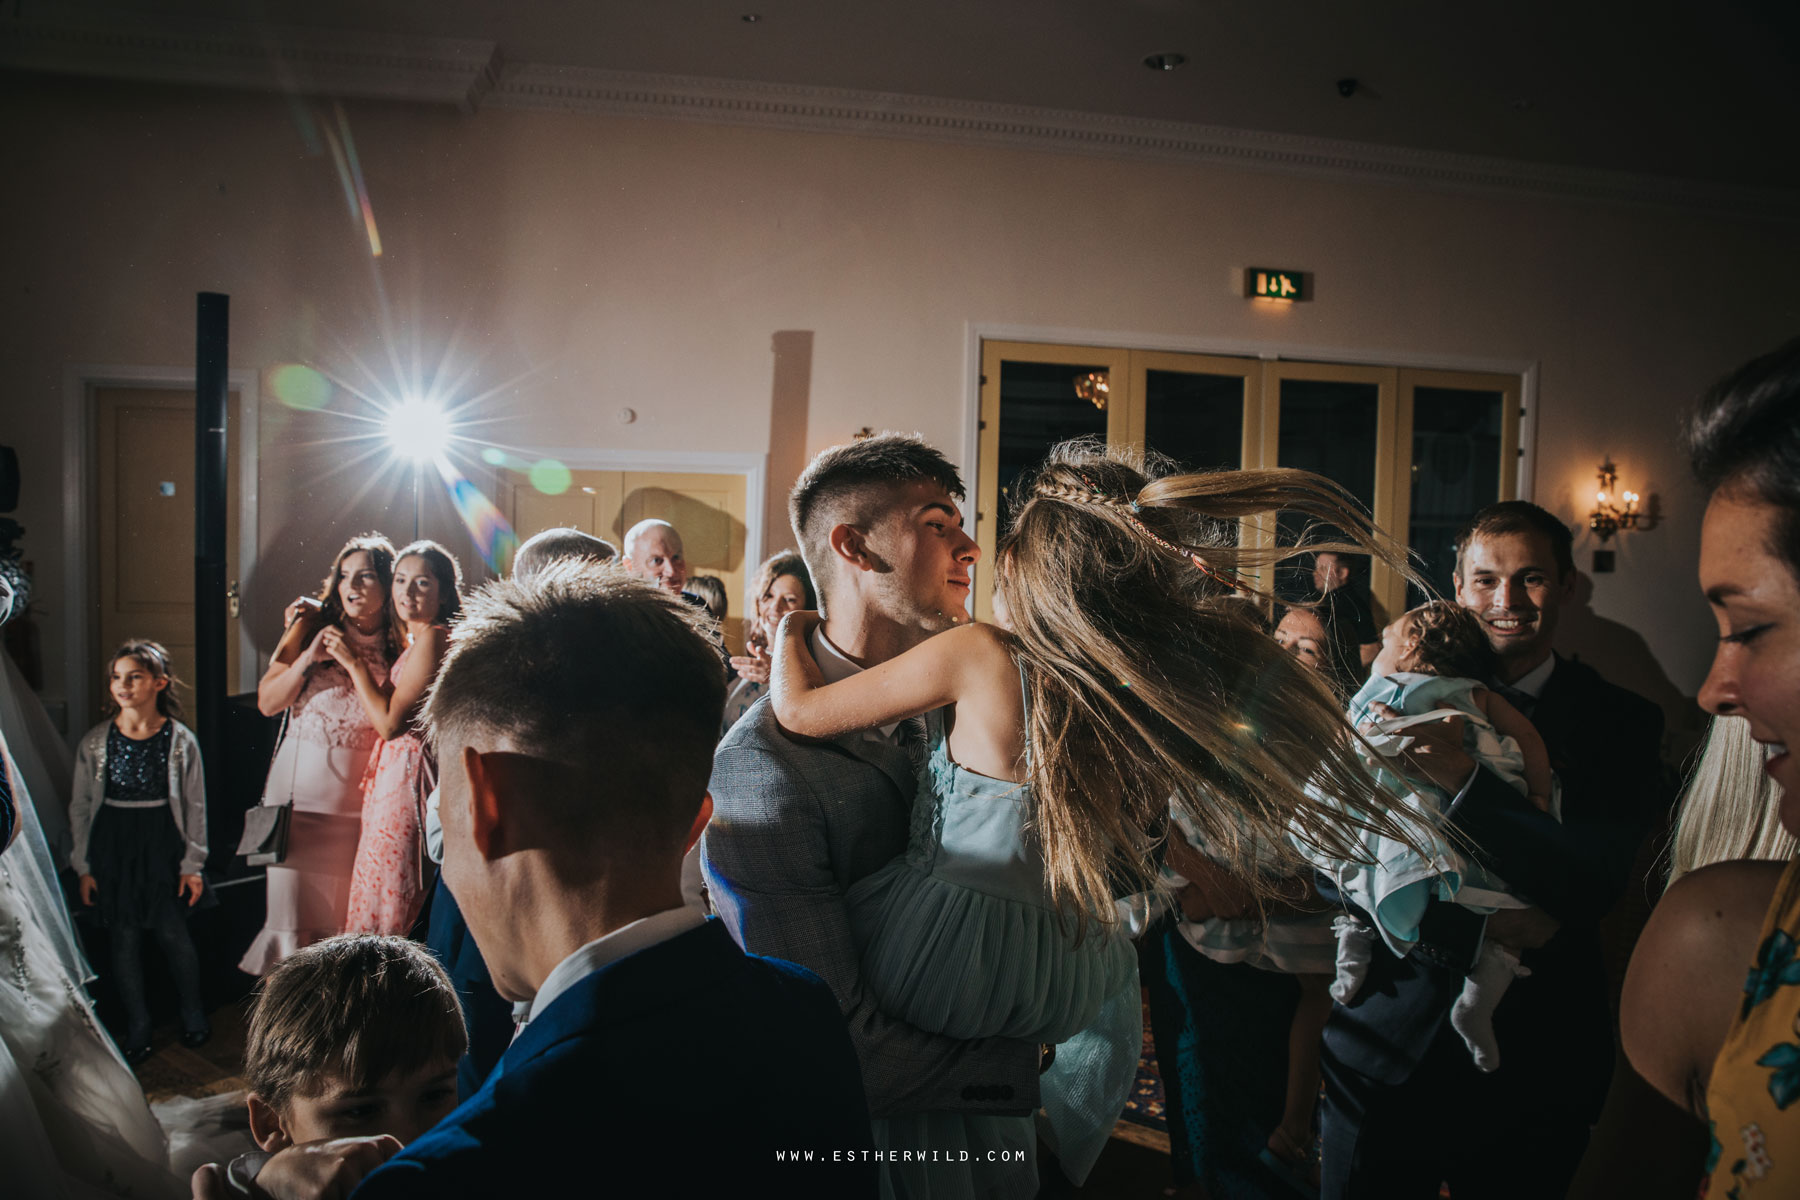 Lynford_Hall_Wedding_Thetford_Mundford_Esther_Wild_Photographer_IMG_3556.jpg